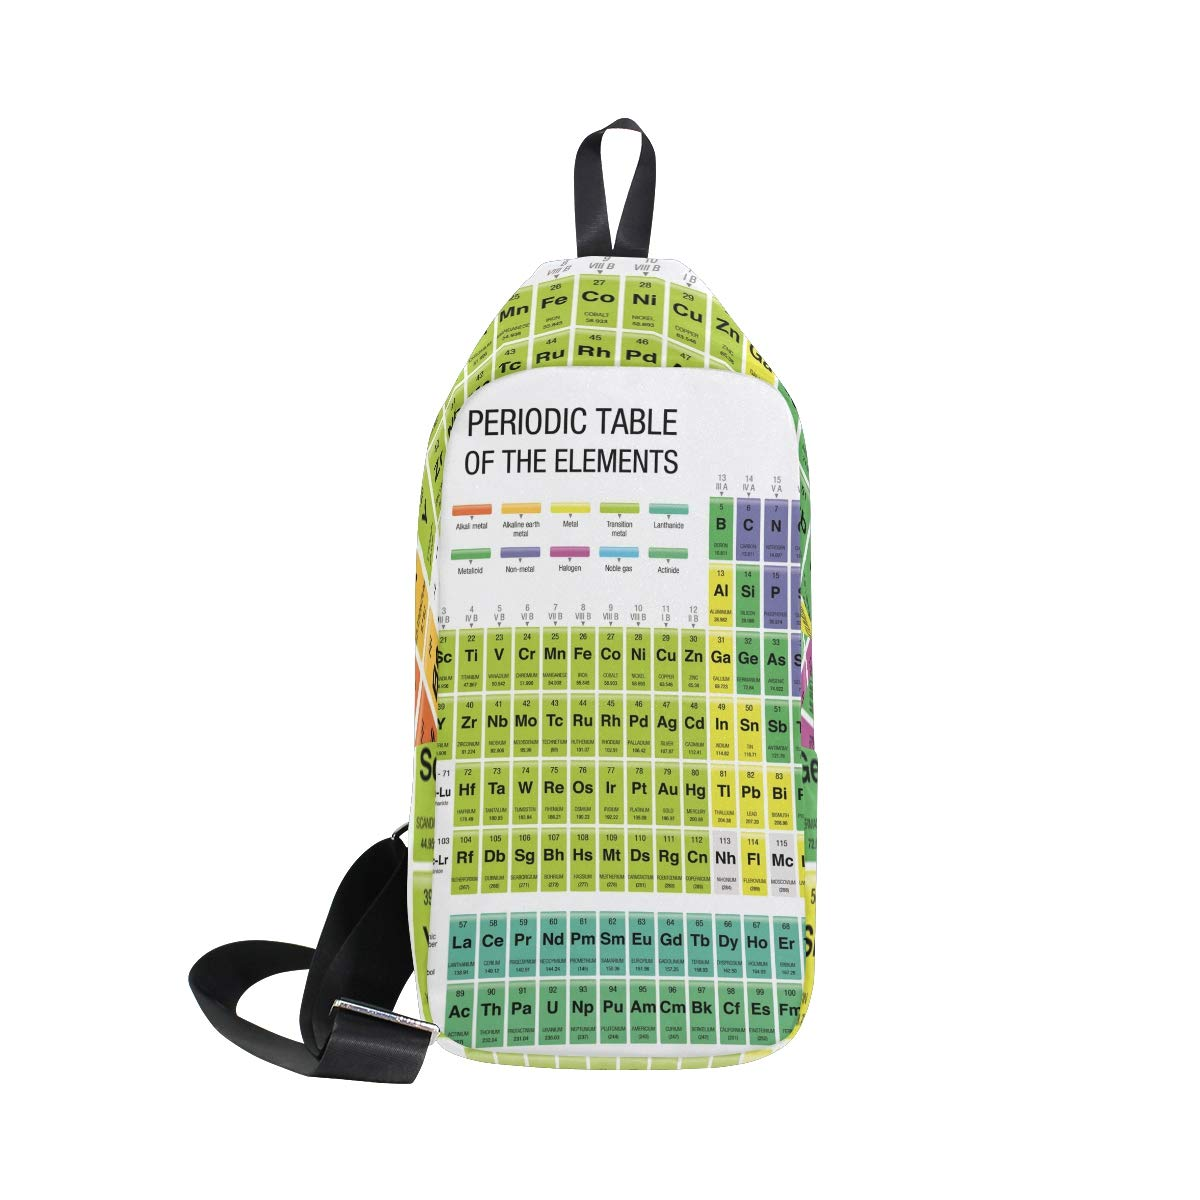 Unisex Messenger Bag Periodic Table Of Element Shoulder Chest Cross Body Backpack Bag